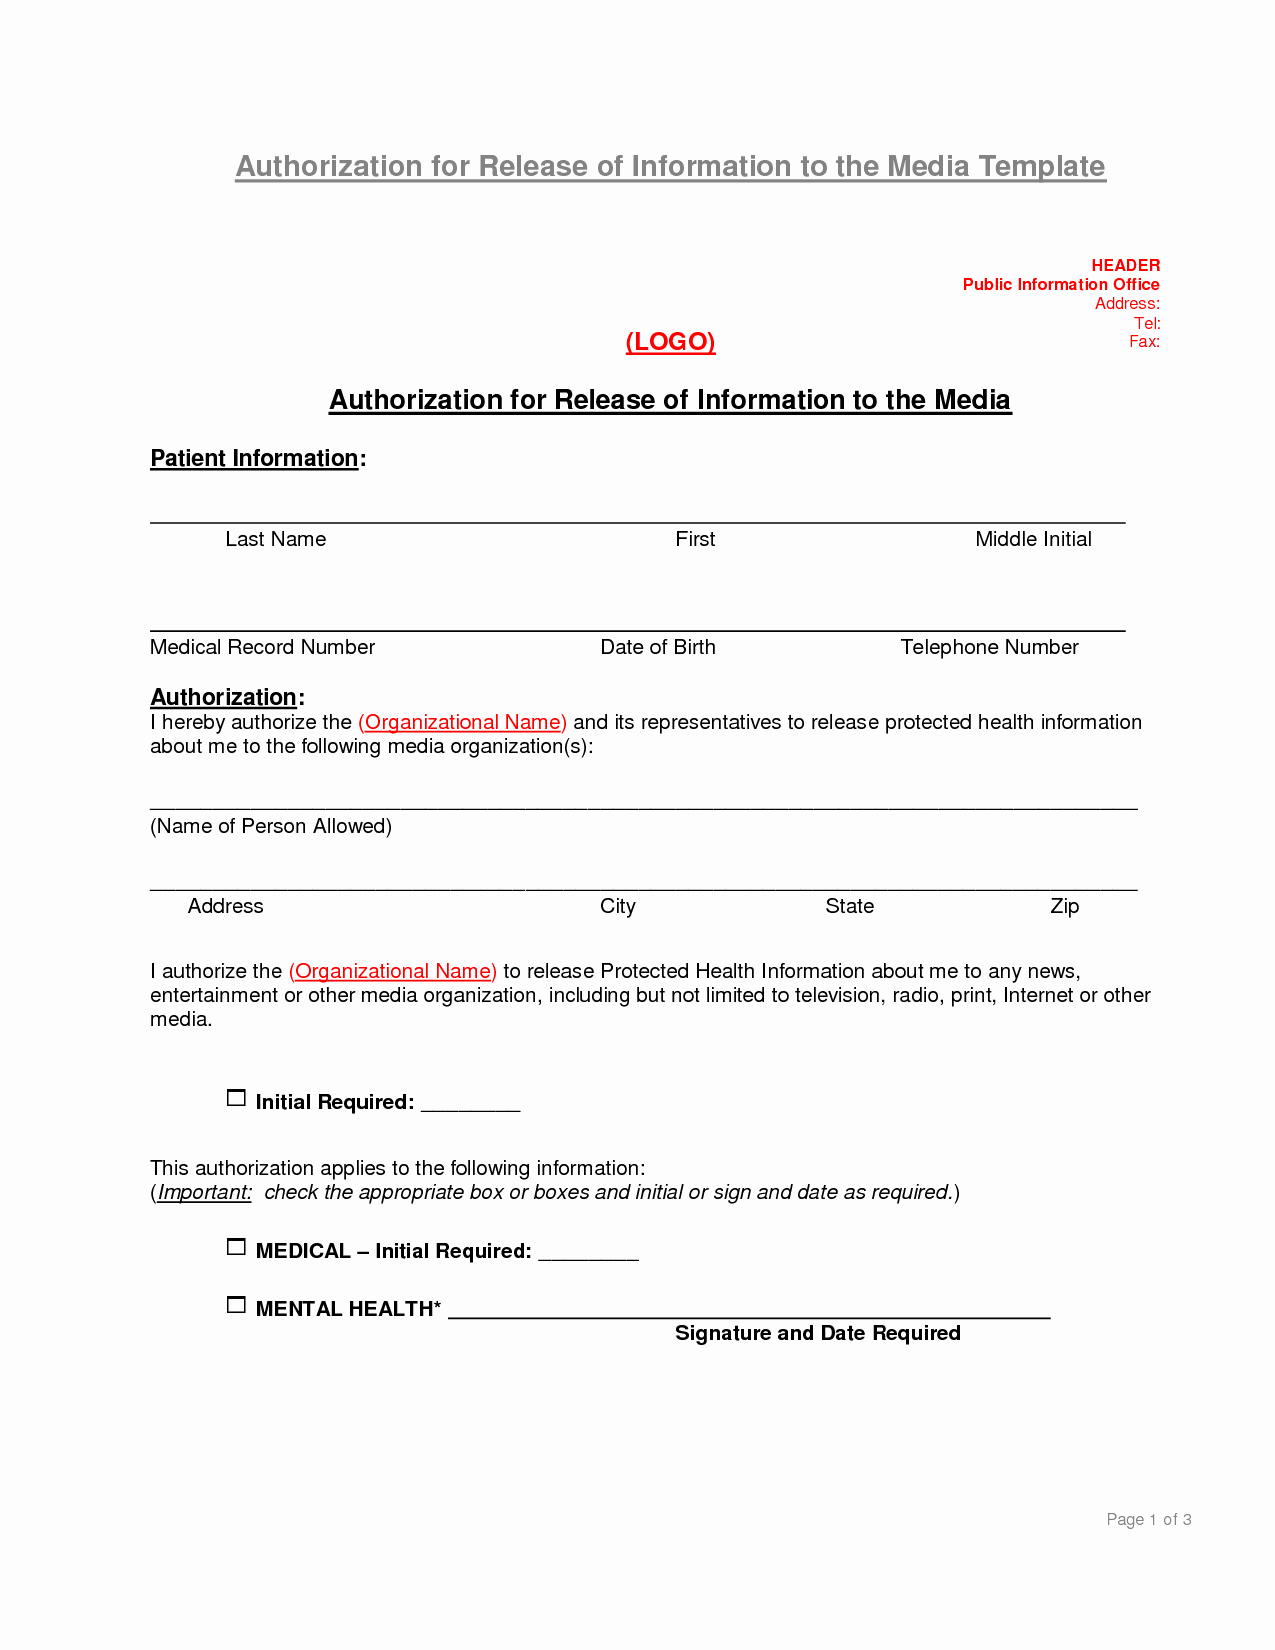 Authorization to Release Information Template